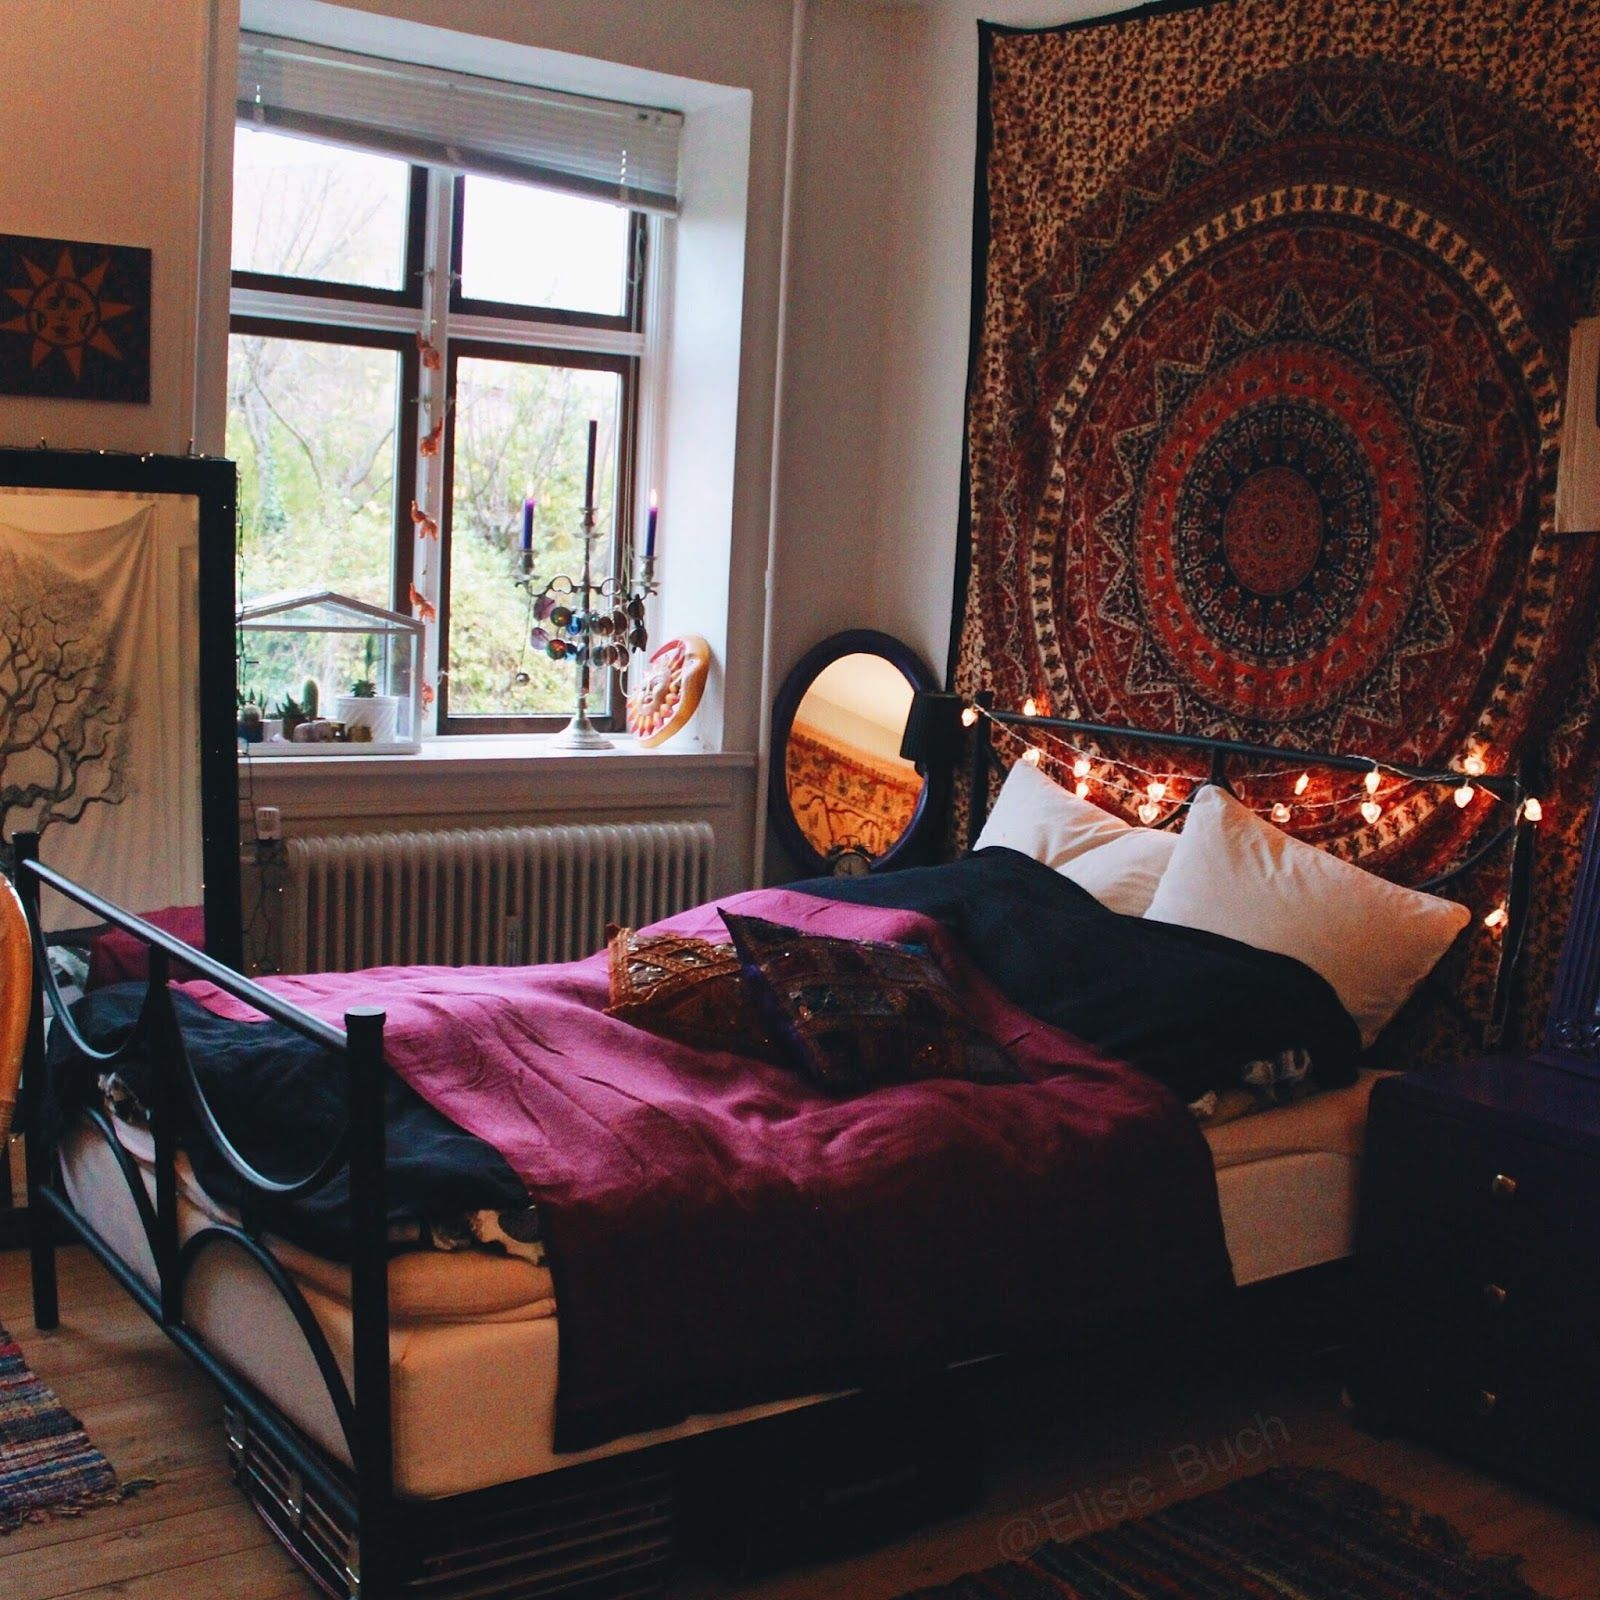 Elise buch my room makeover bohemian hippie inspired for Room decorating ideas hippie